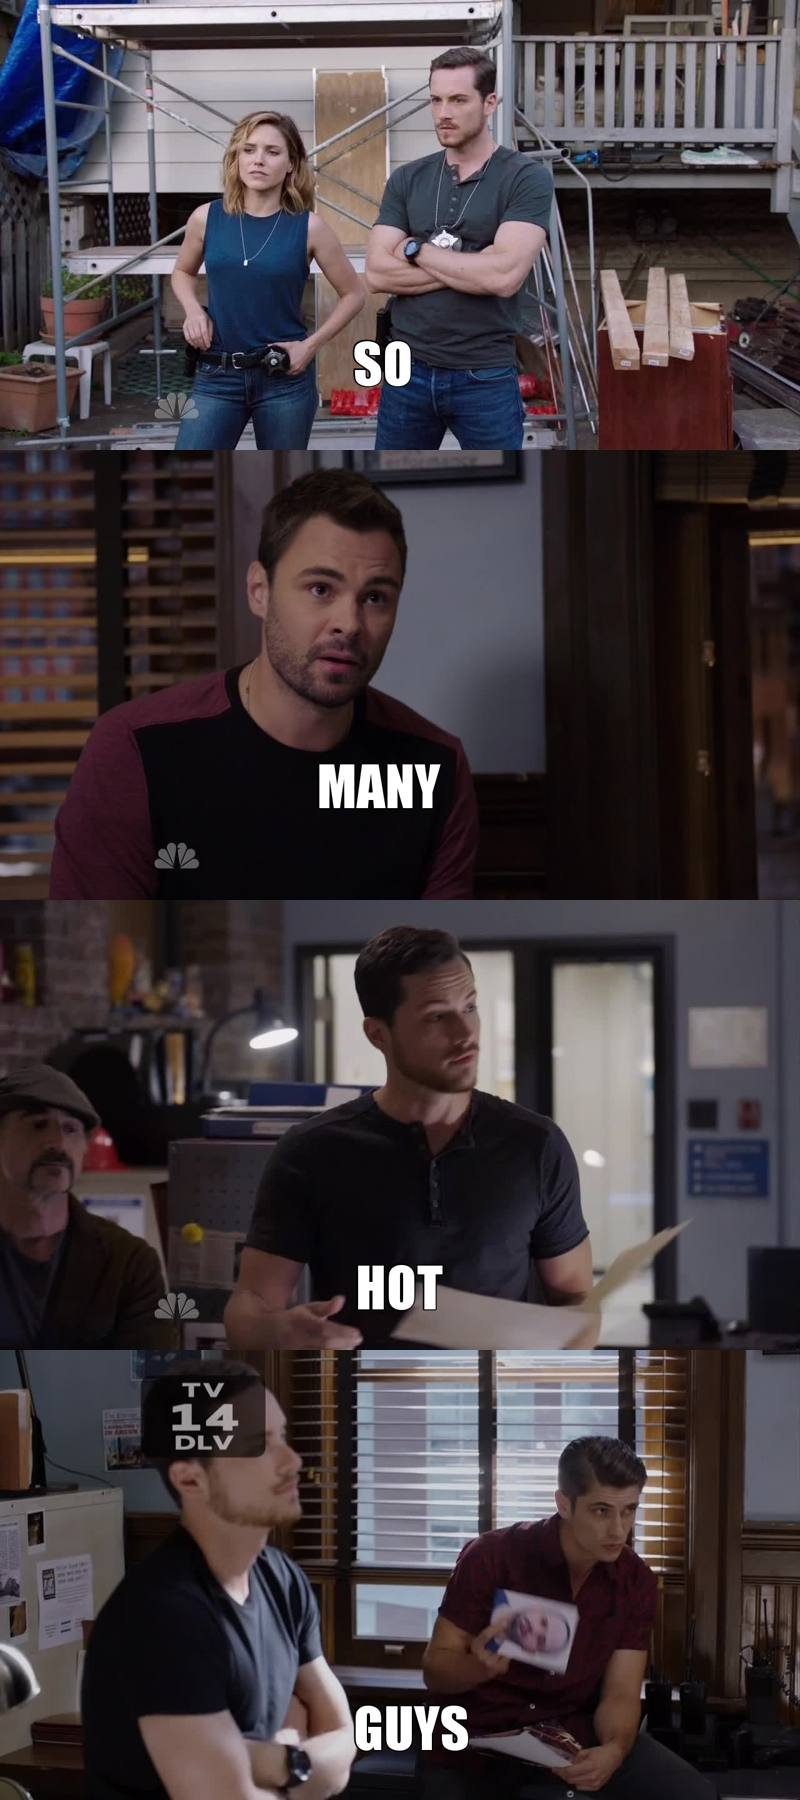 Loved this episode btw, can't wait for Chicago Fire noww